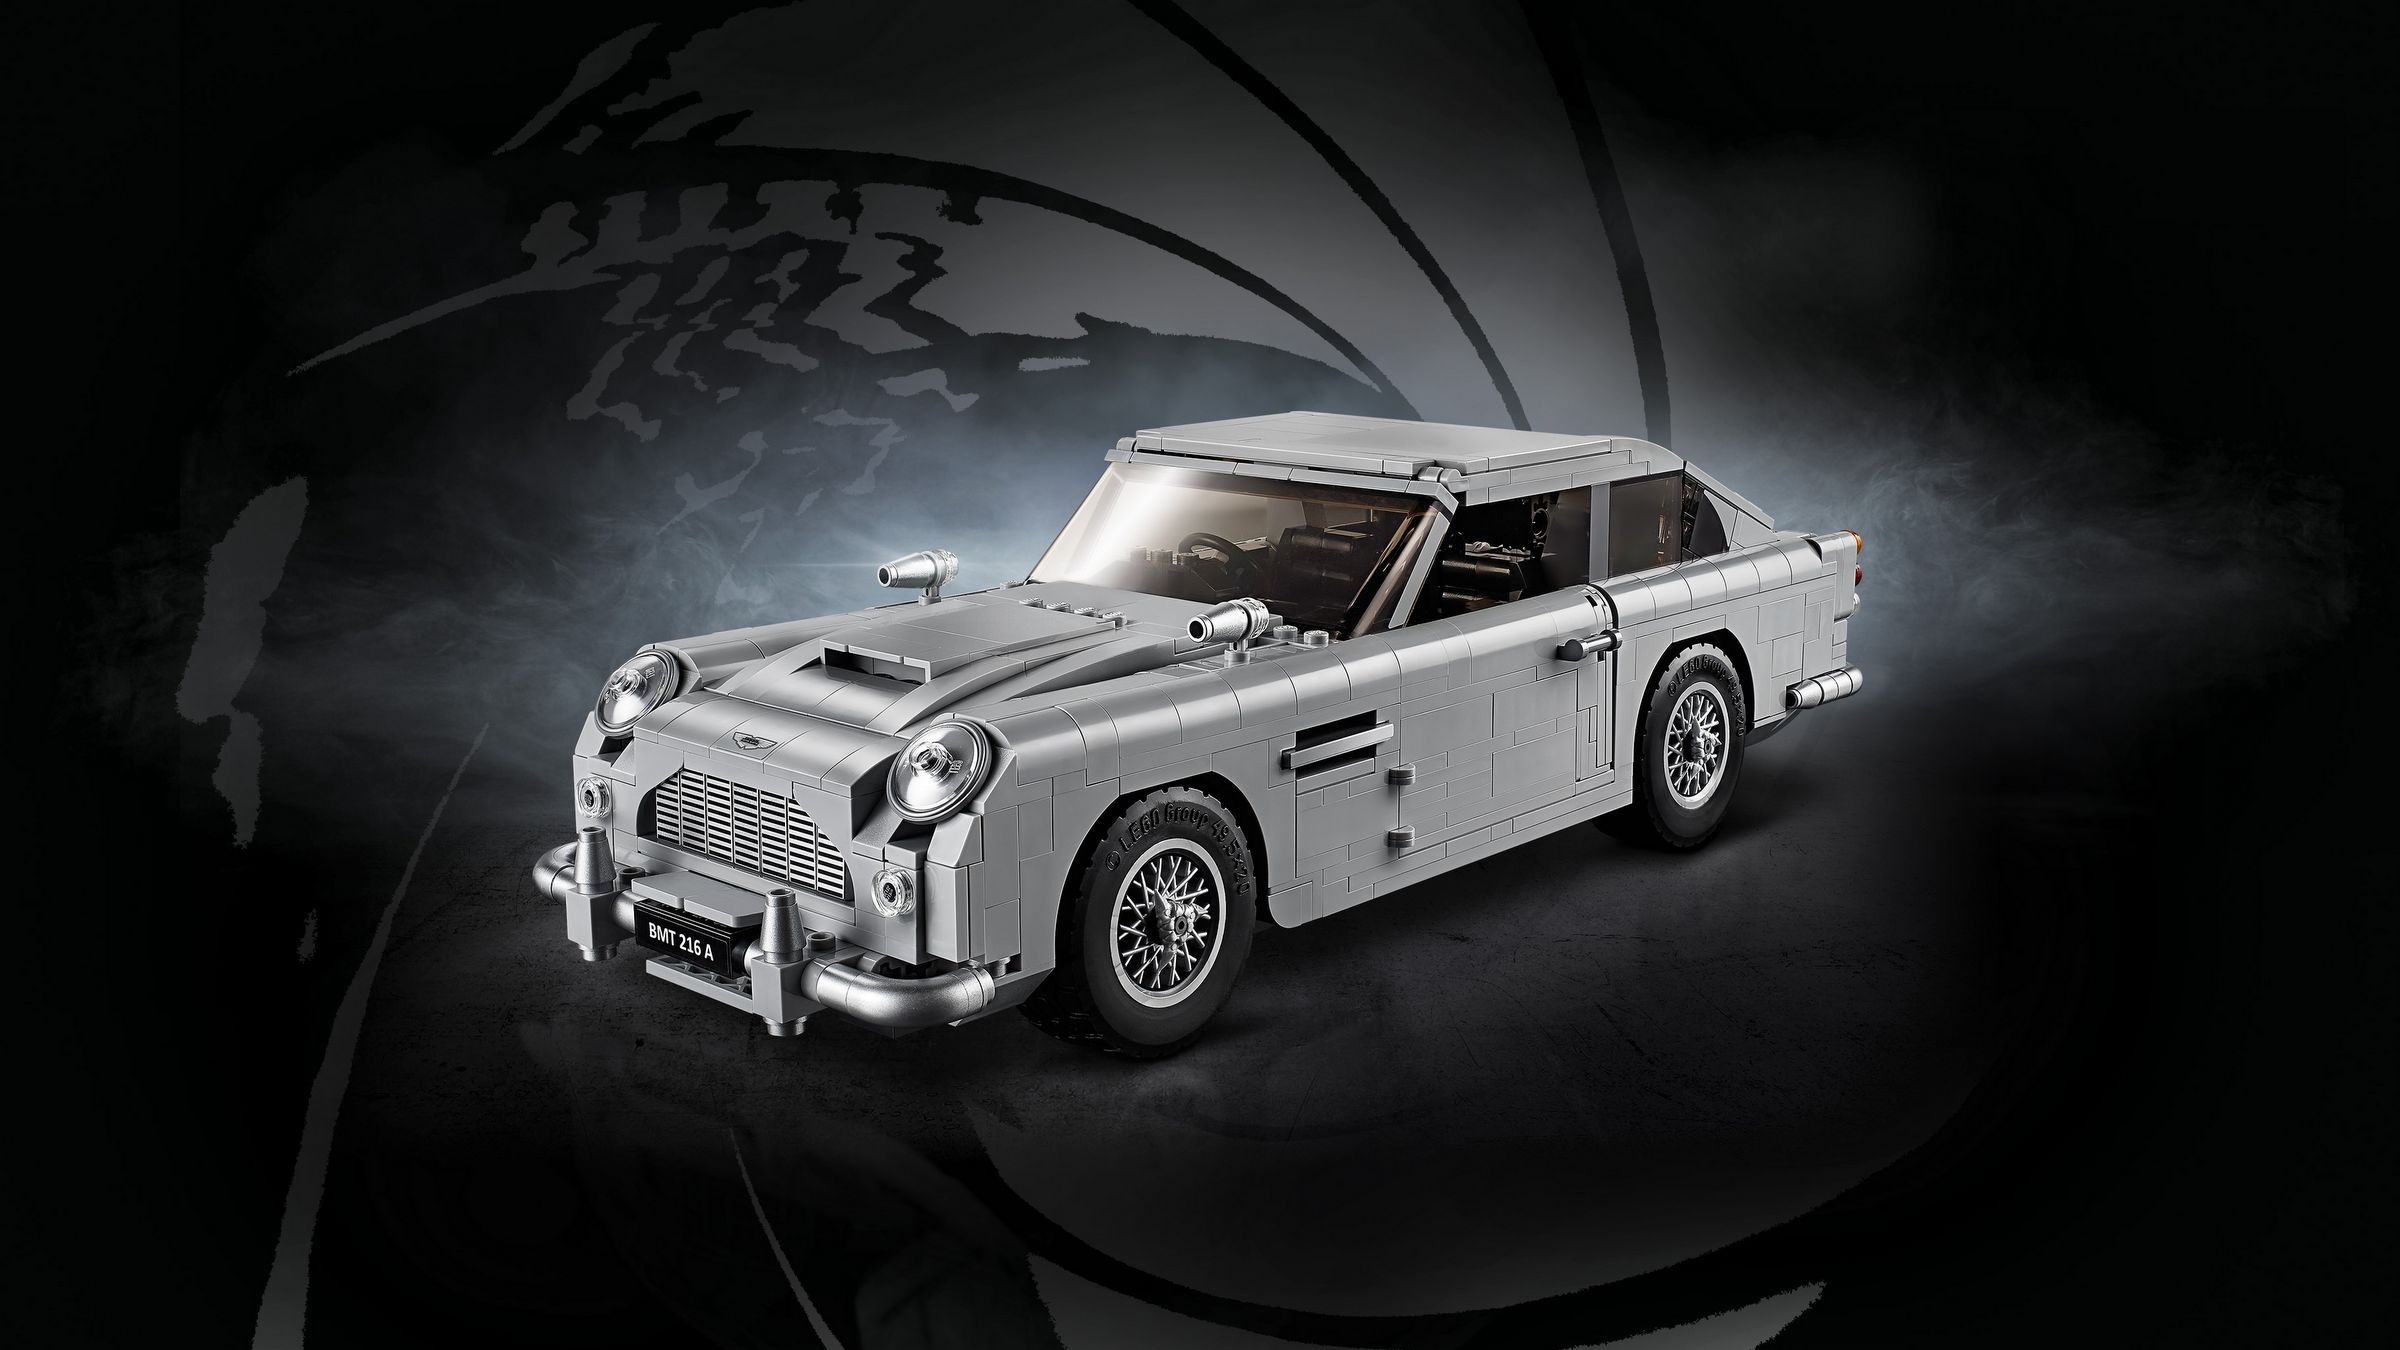 LEGO Advanced Models 10262 James Bond Aston Martin DB5 LEGO_10262_alt17.jpg